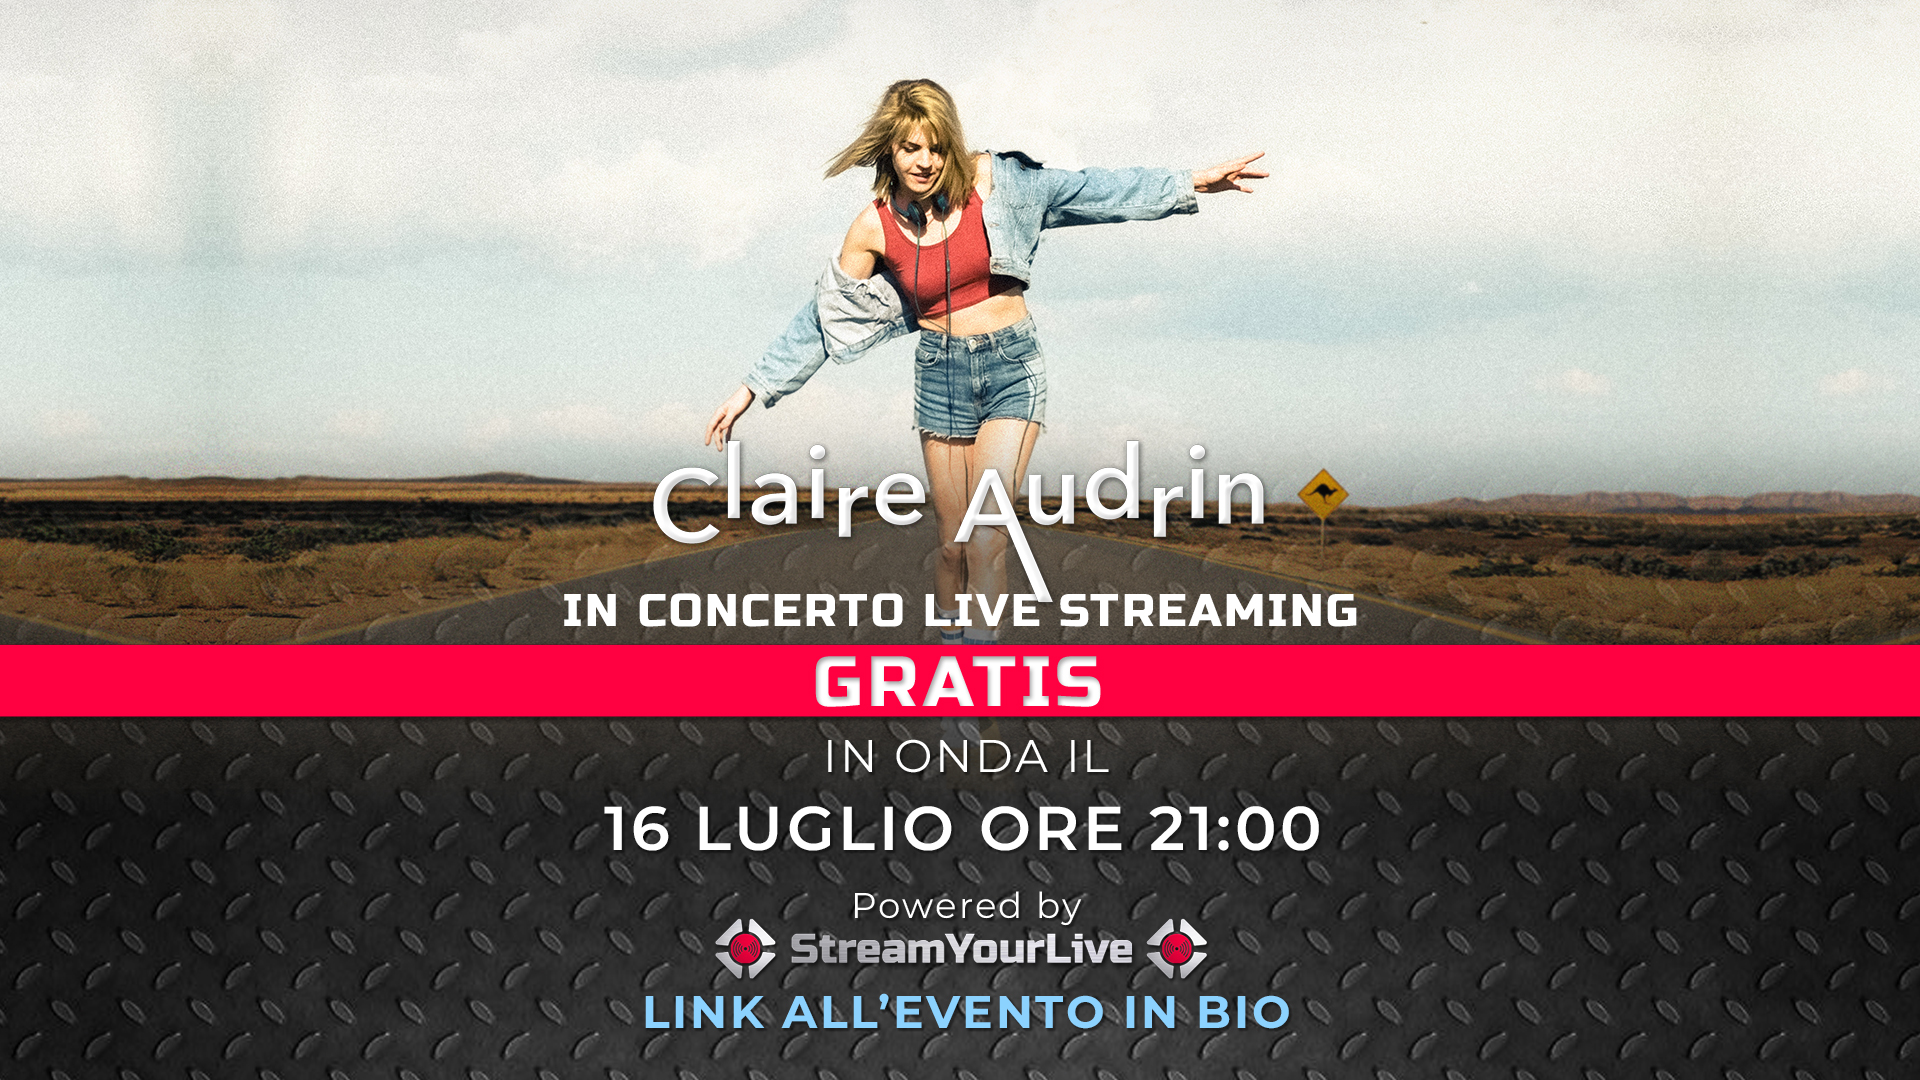 LIVE: CLAIRE AUDRIN